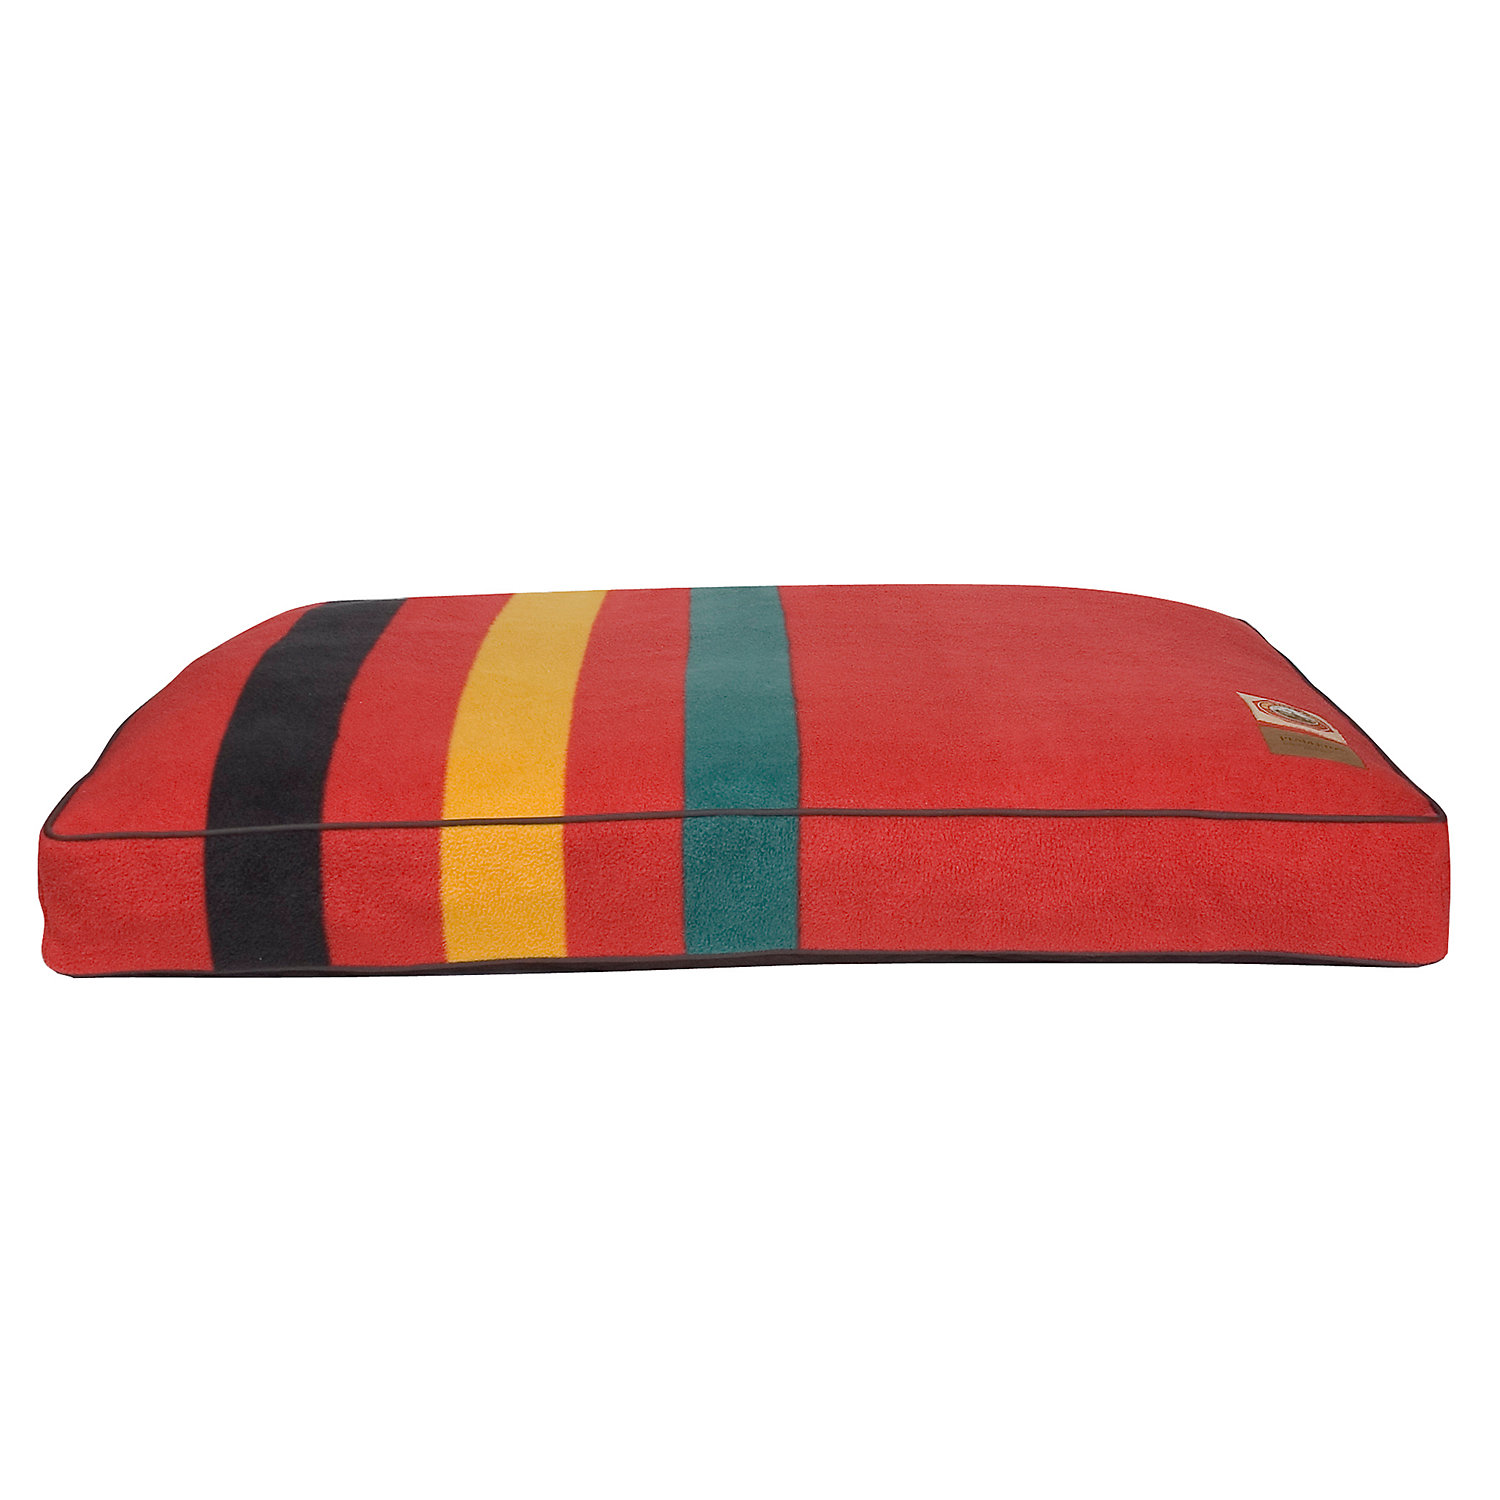 Pendleton Ranier National Park Dog Bed 40 L x 32 W Large Red